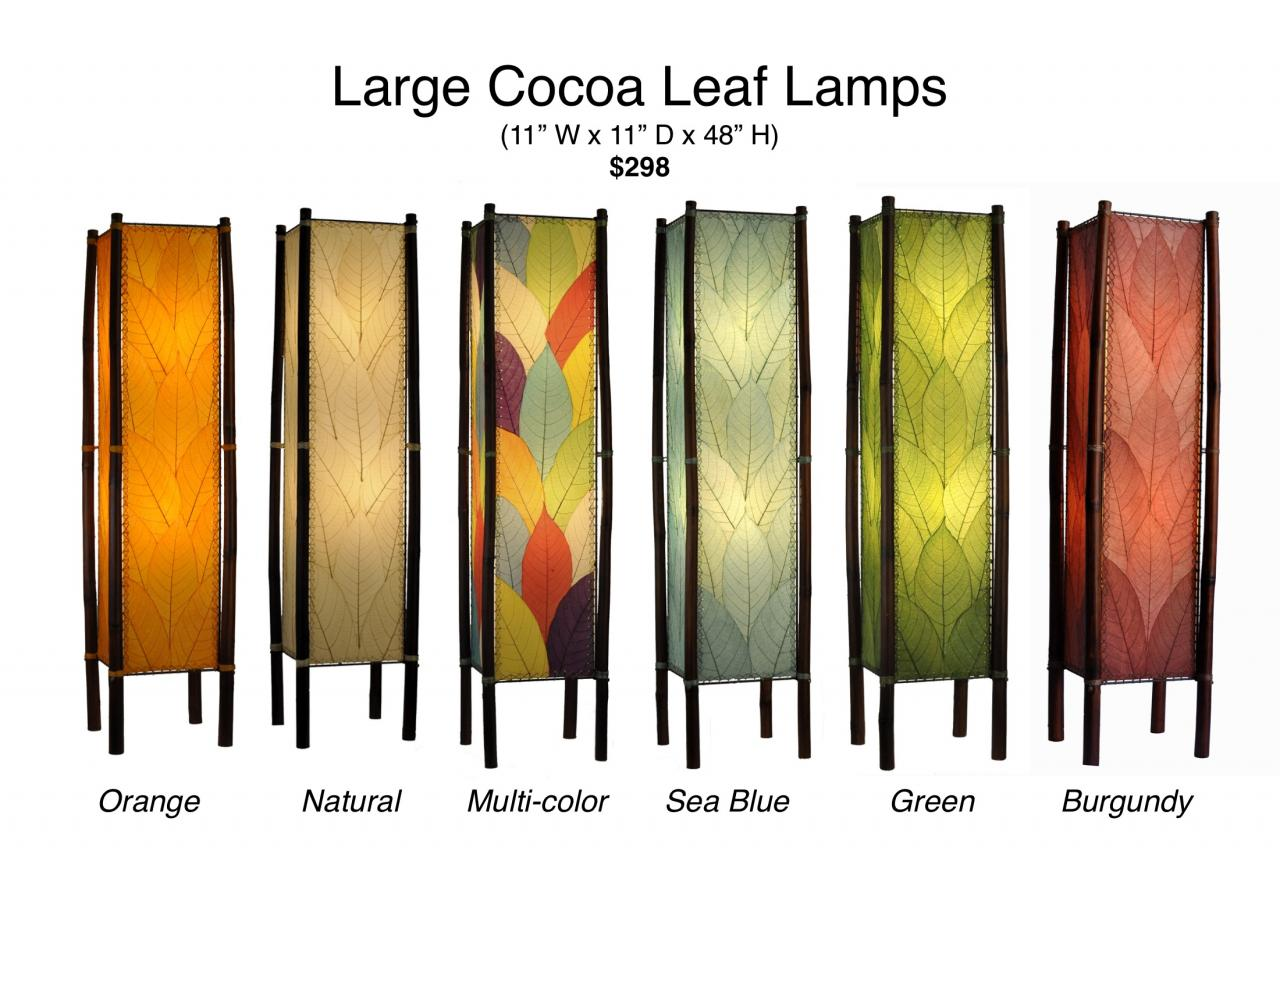 palm product name image gold modern lamp selection floor lamps of leaf mid century